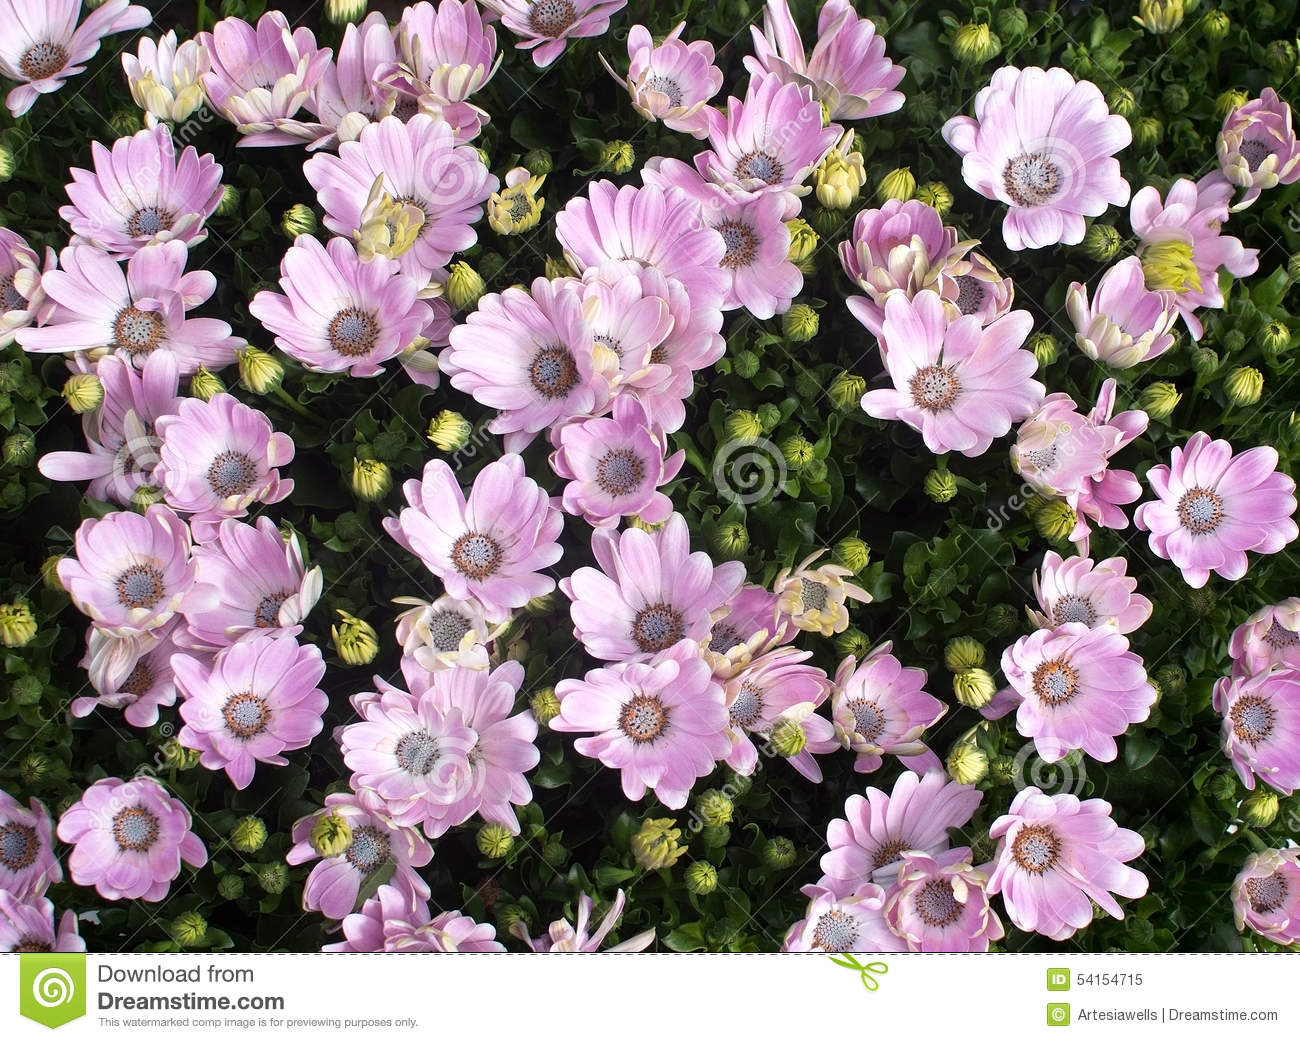 Pink daisy like flowers stock image image of outdoor 54154715 download pink daisy like flowers stock image image of outdoor 54154715 izmirmasajfo